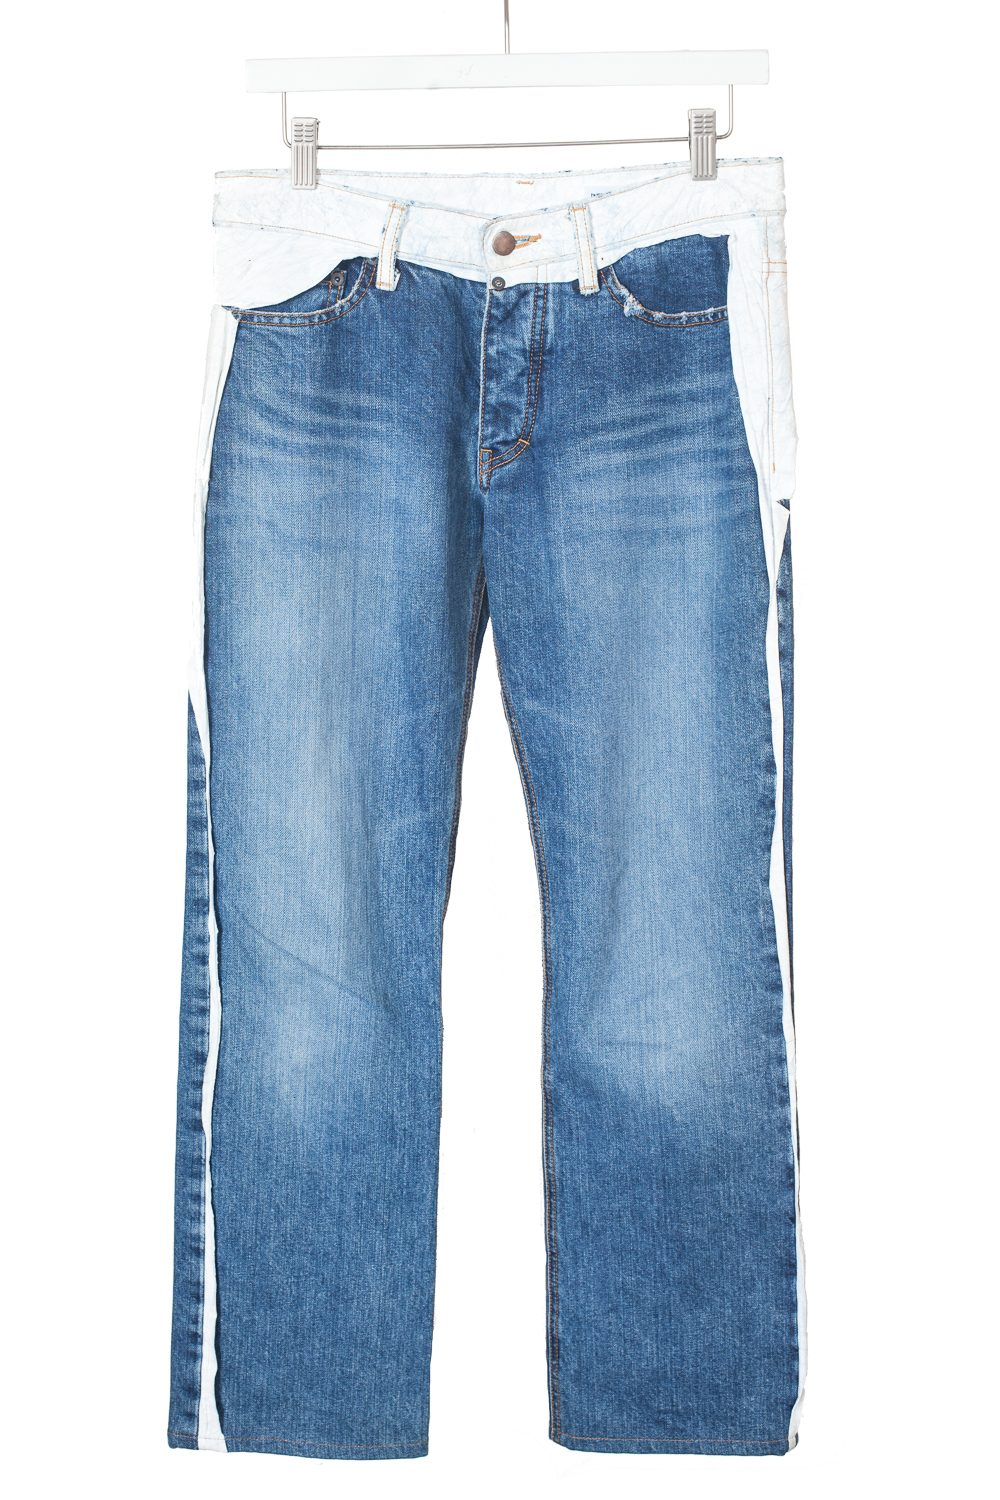 Tyvek Cartesia Denim